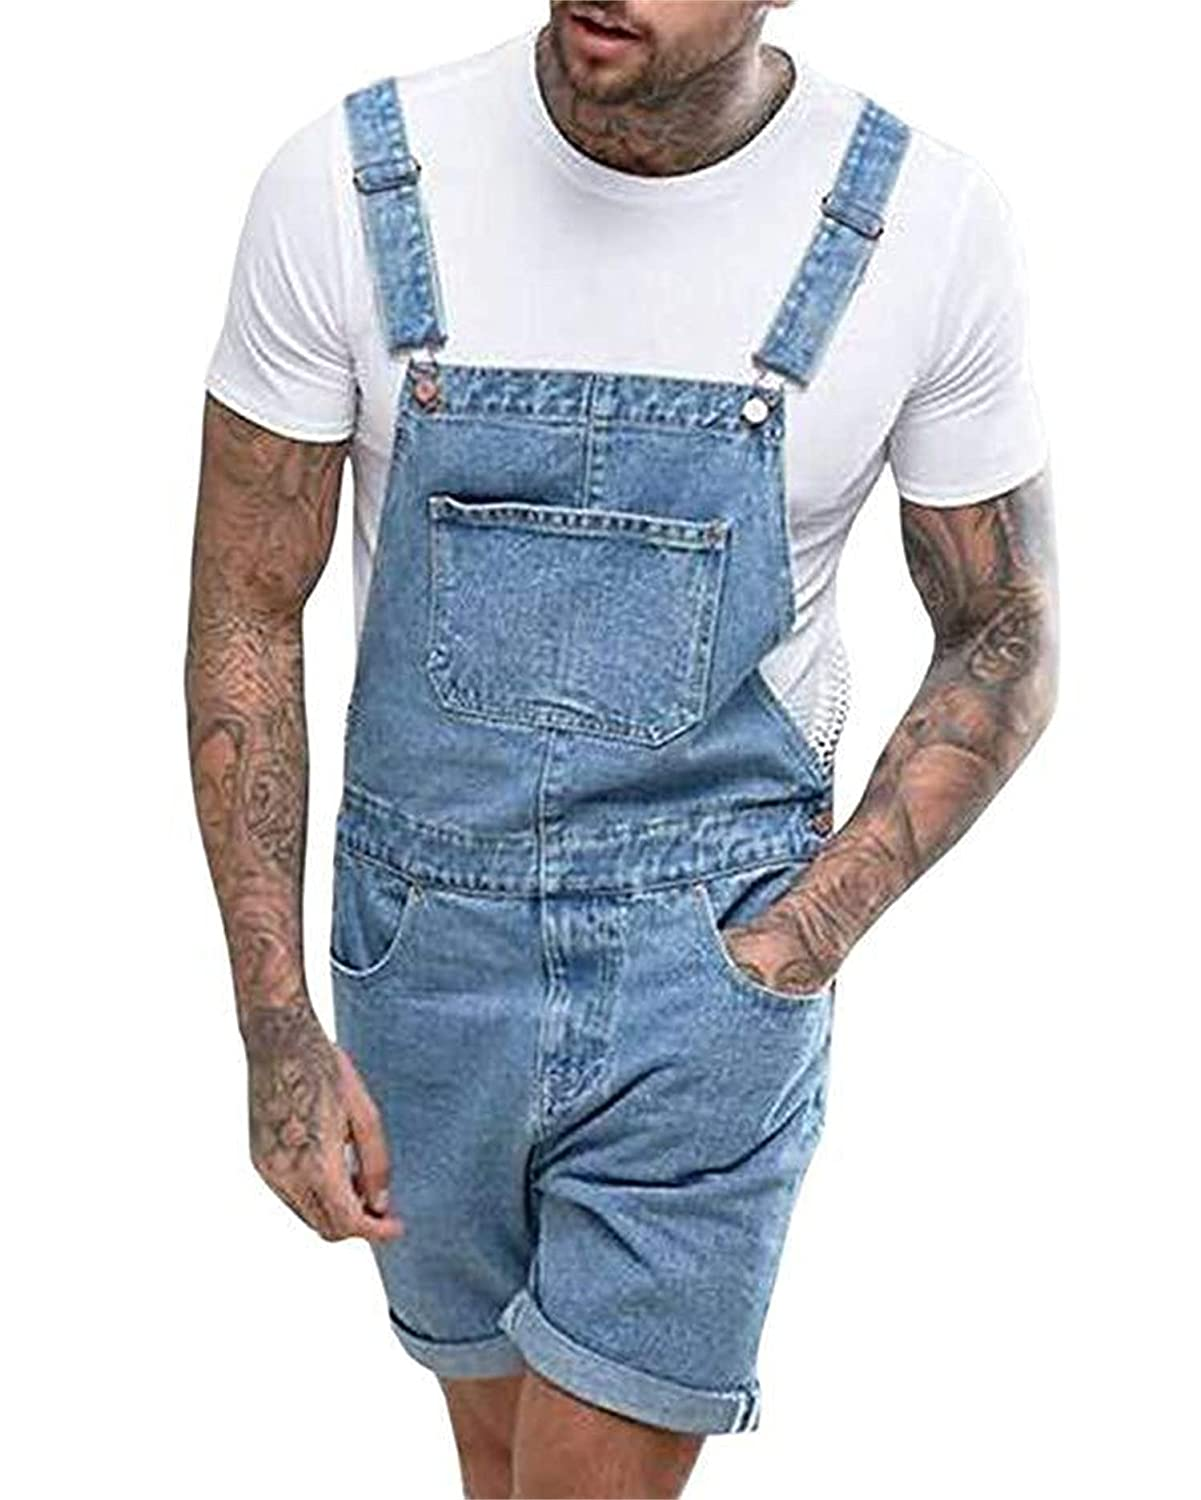 Mens Super popular specialty Great interest store Denim Bib Overall Shorts Dungaree Ripped Rompers Distressed